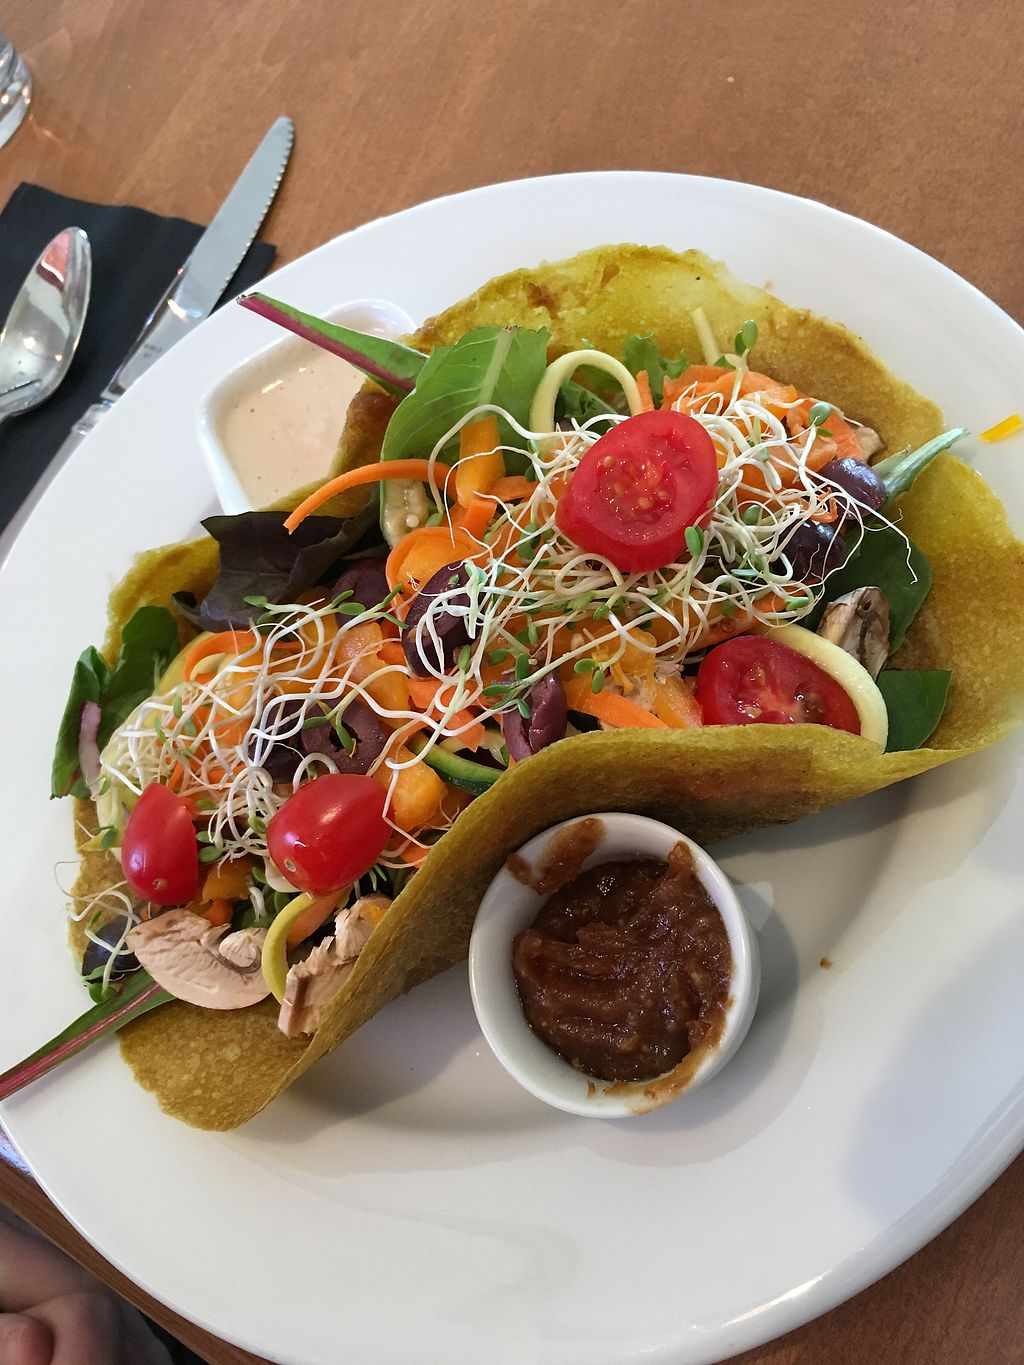 """Photo of Vibrance  by <a href=""""/members/profile/s7345565"""">s7345565</a> <br/>veggie wrap <br/> June 30, 2017  - <a href='/contact/abuse/image/77106/275231'>Report</a>"""